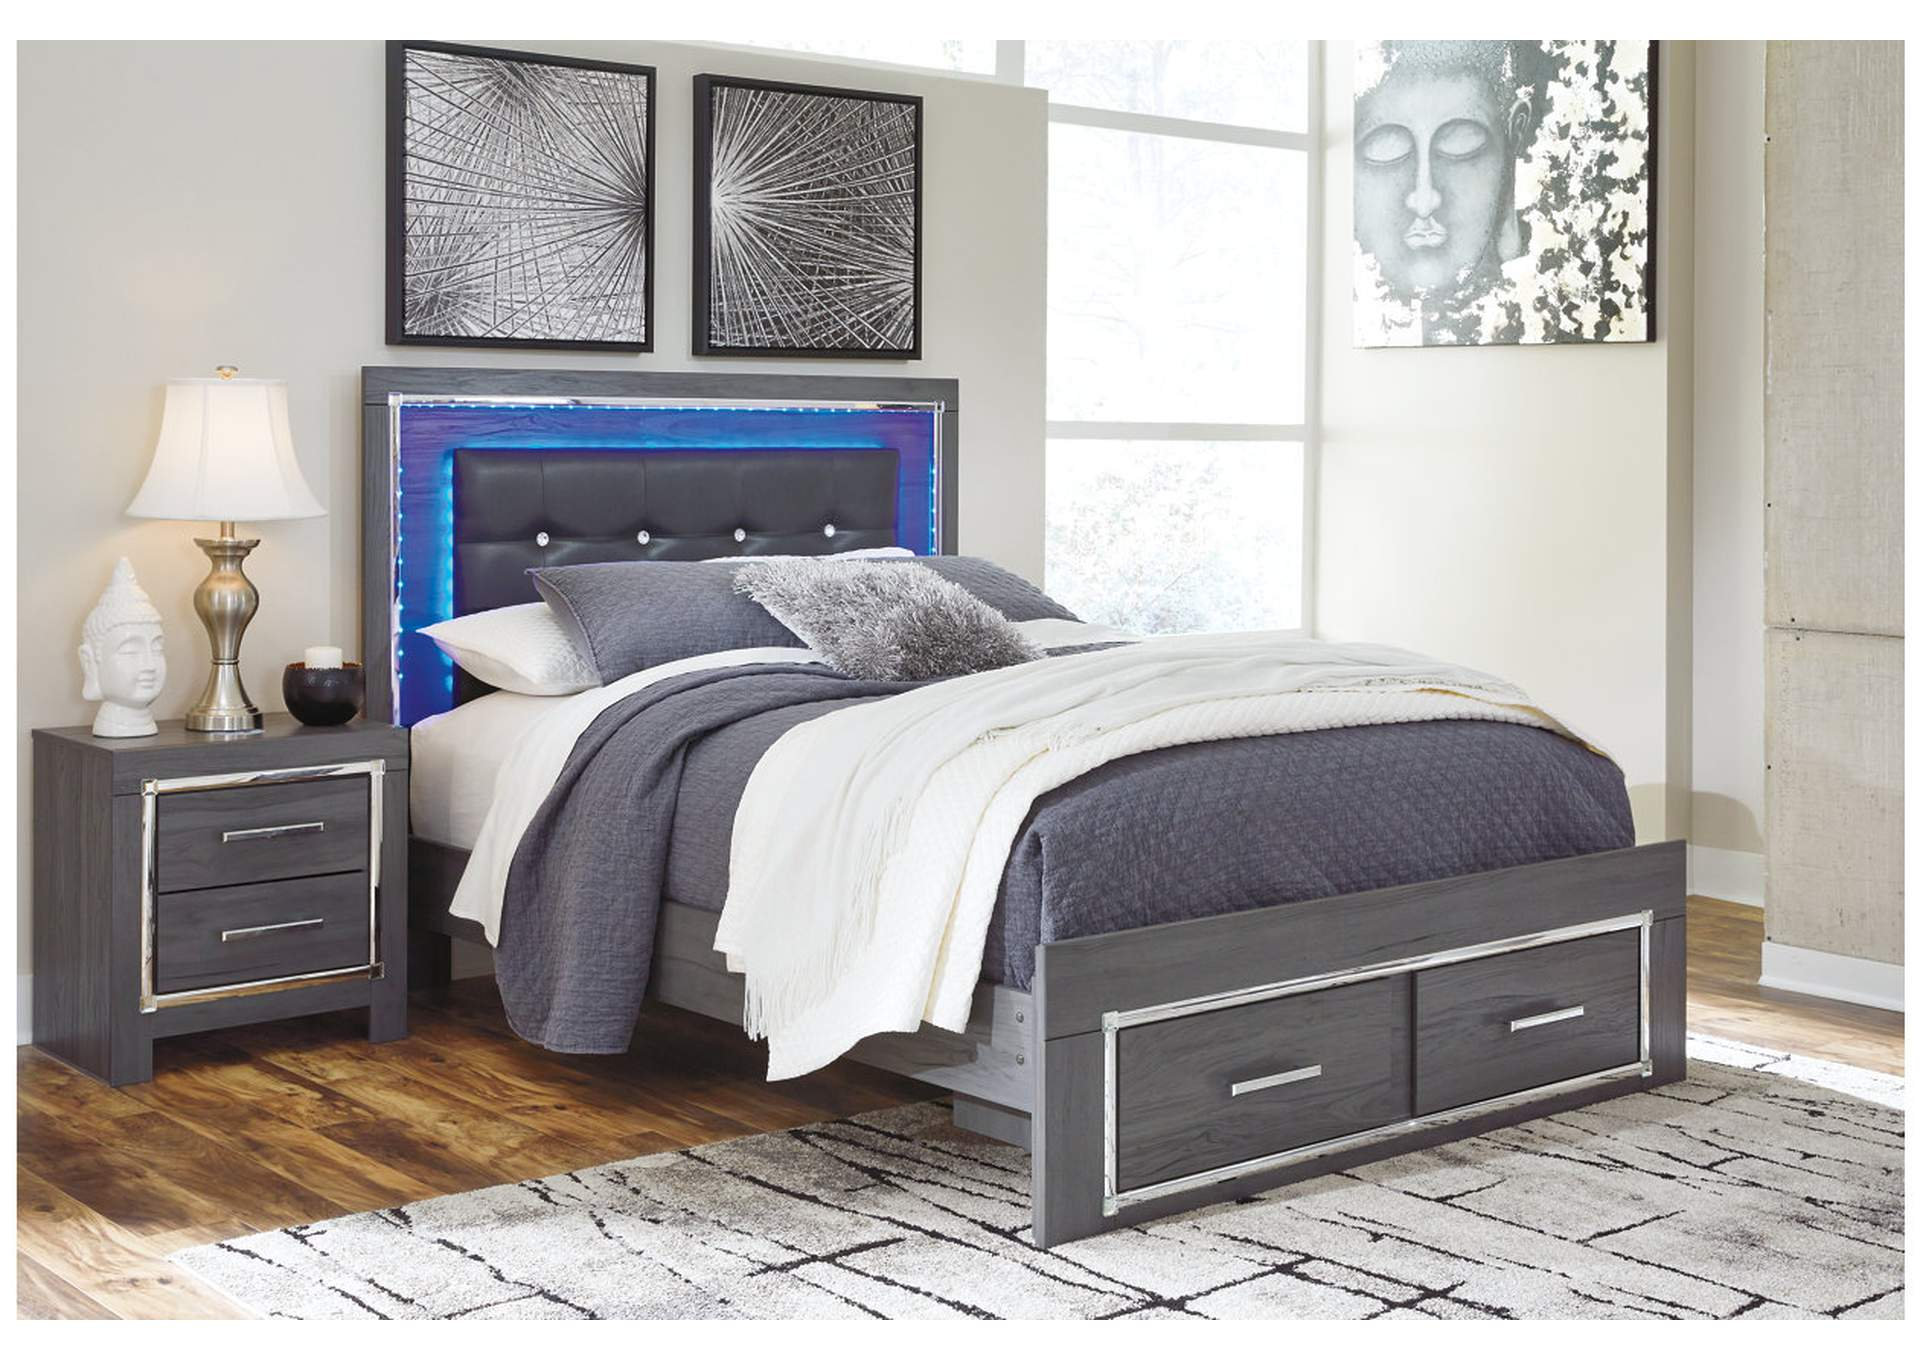 Lodanna Gray Queen Storage Bed,Signature Design By Ashley